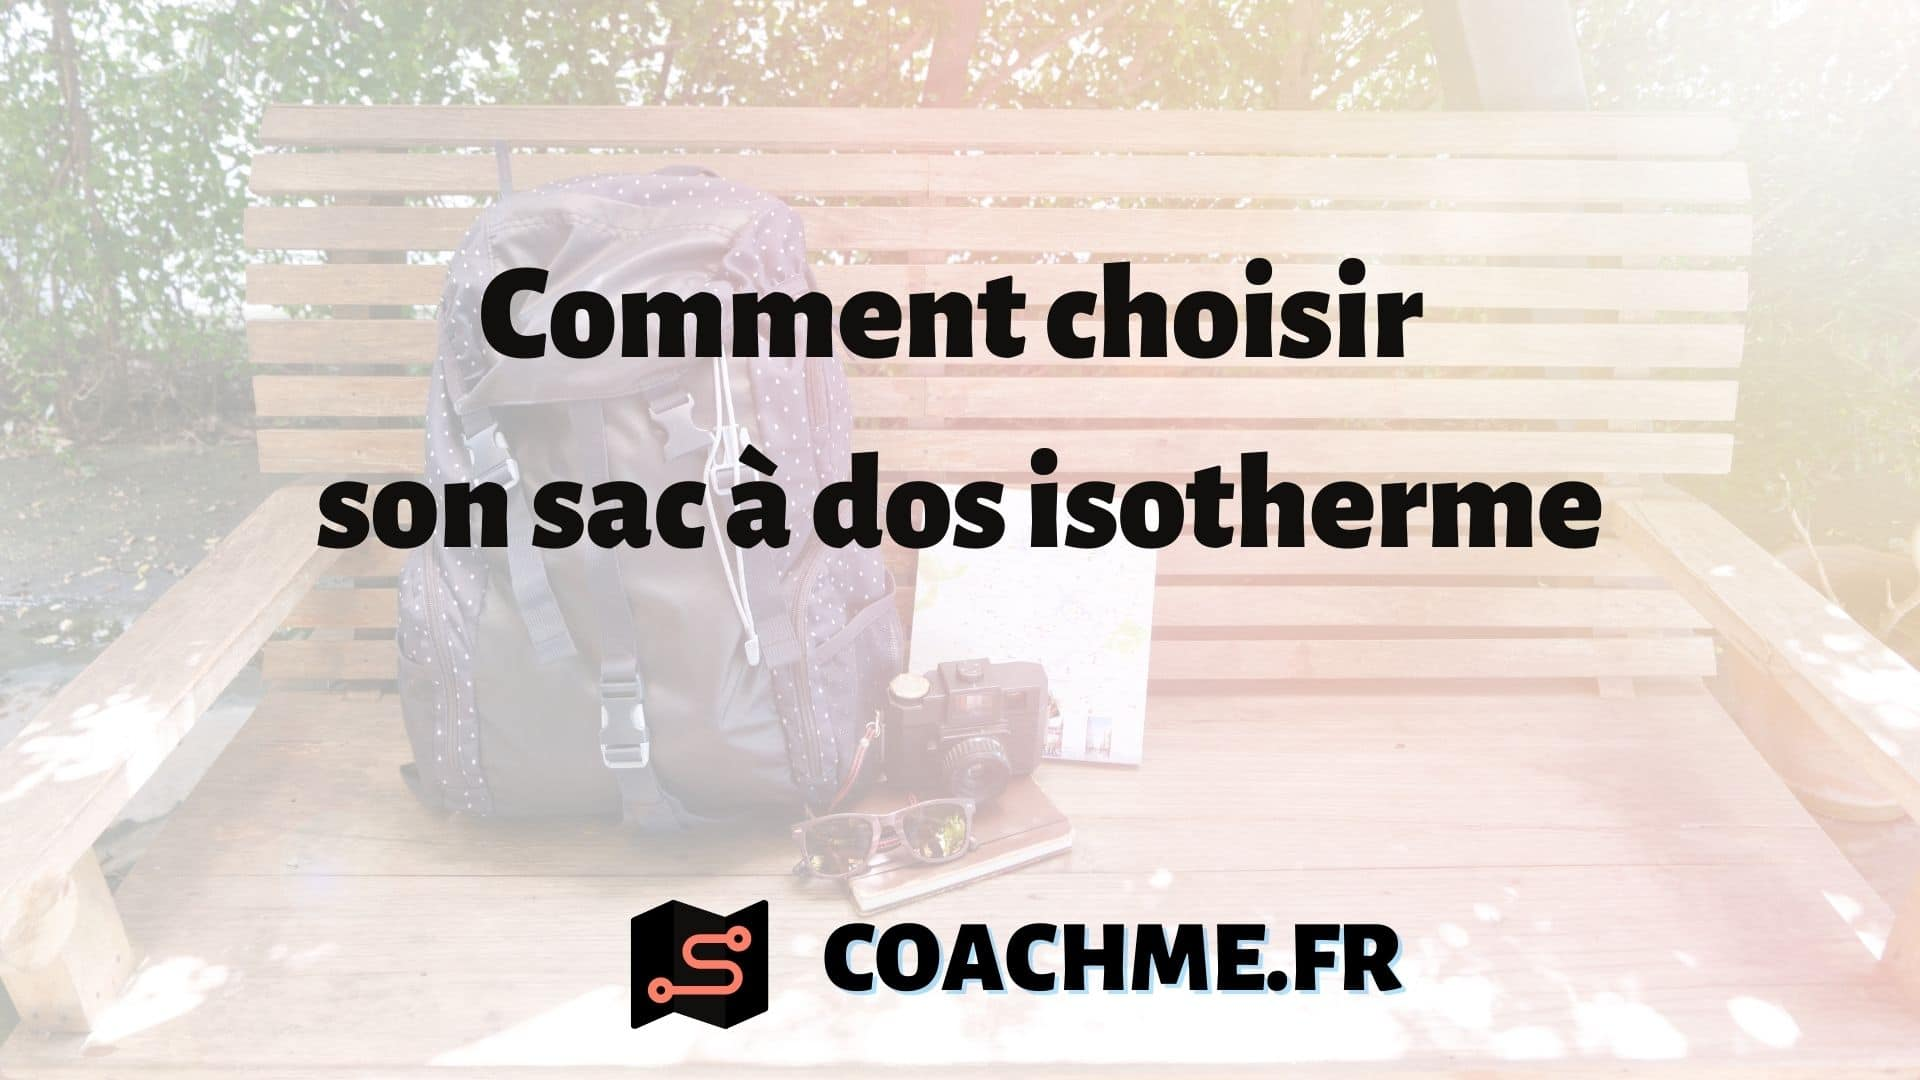 sac a dos isotherme